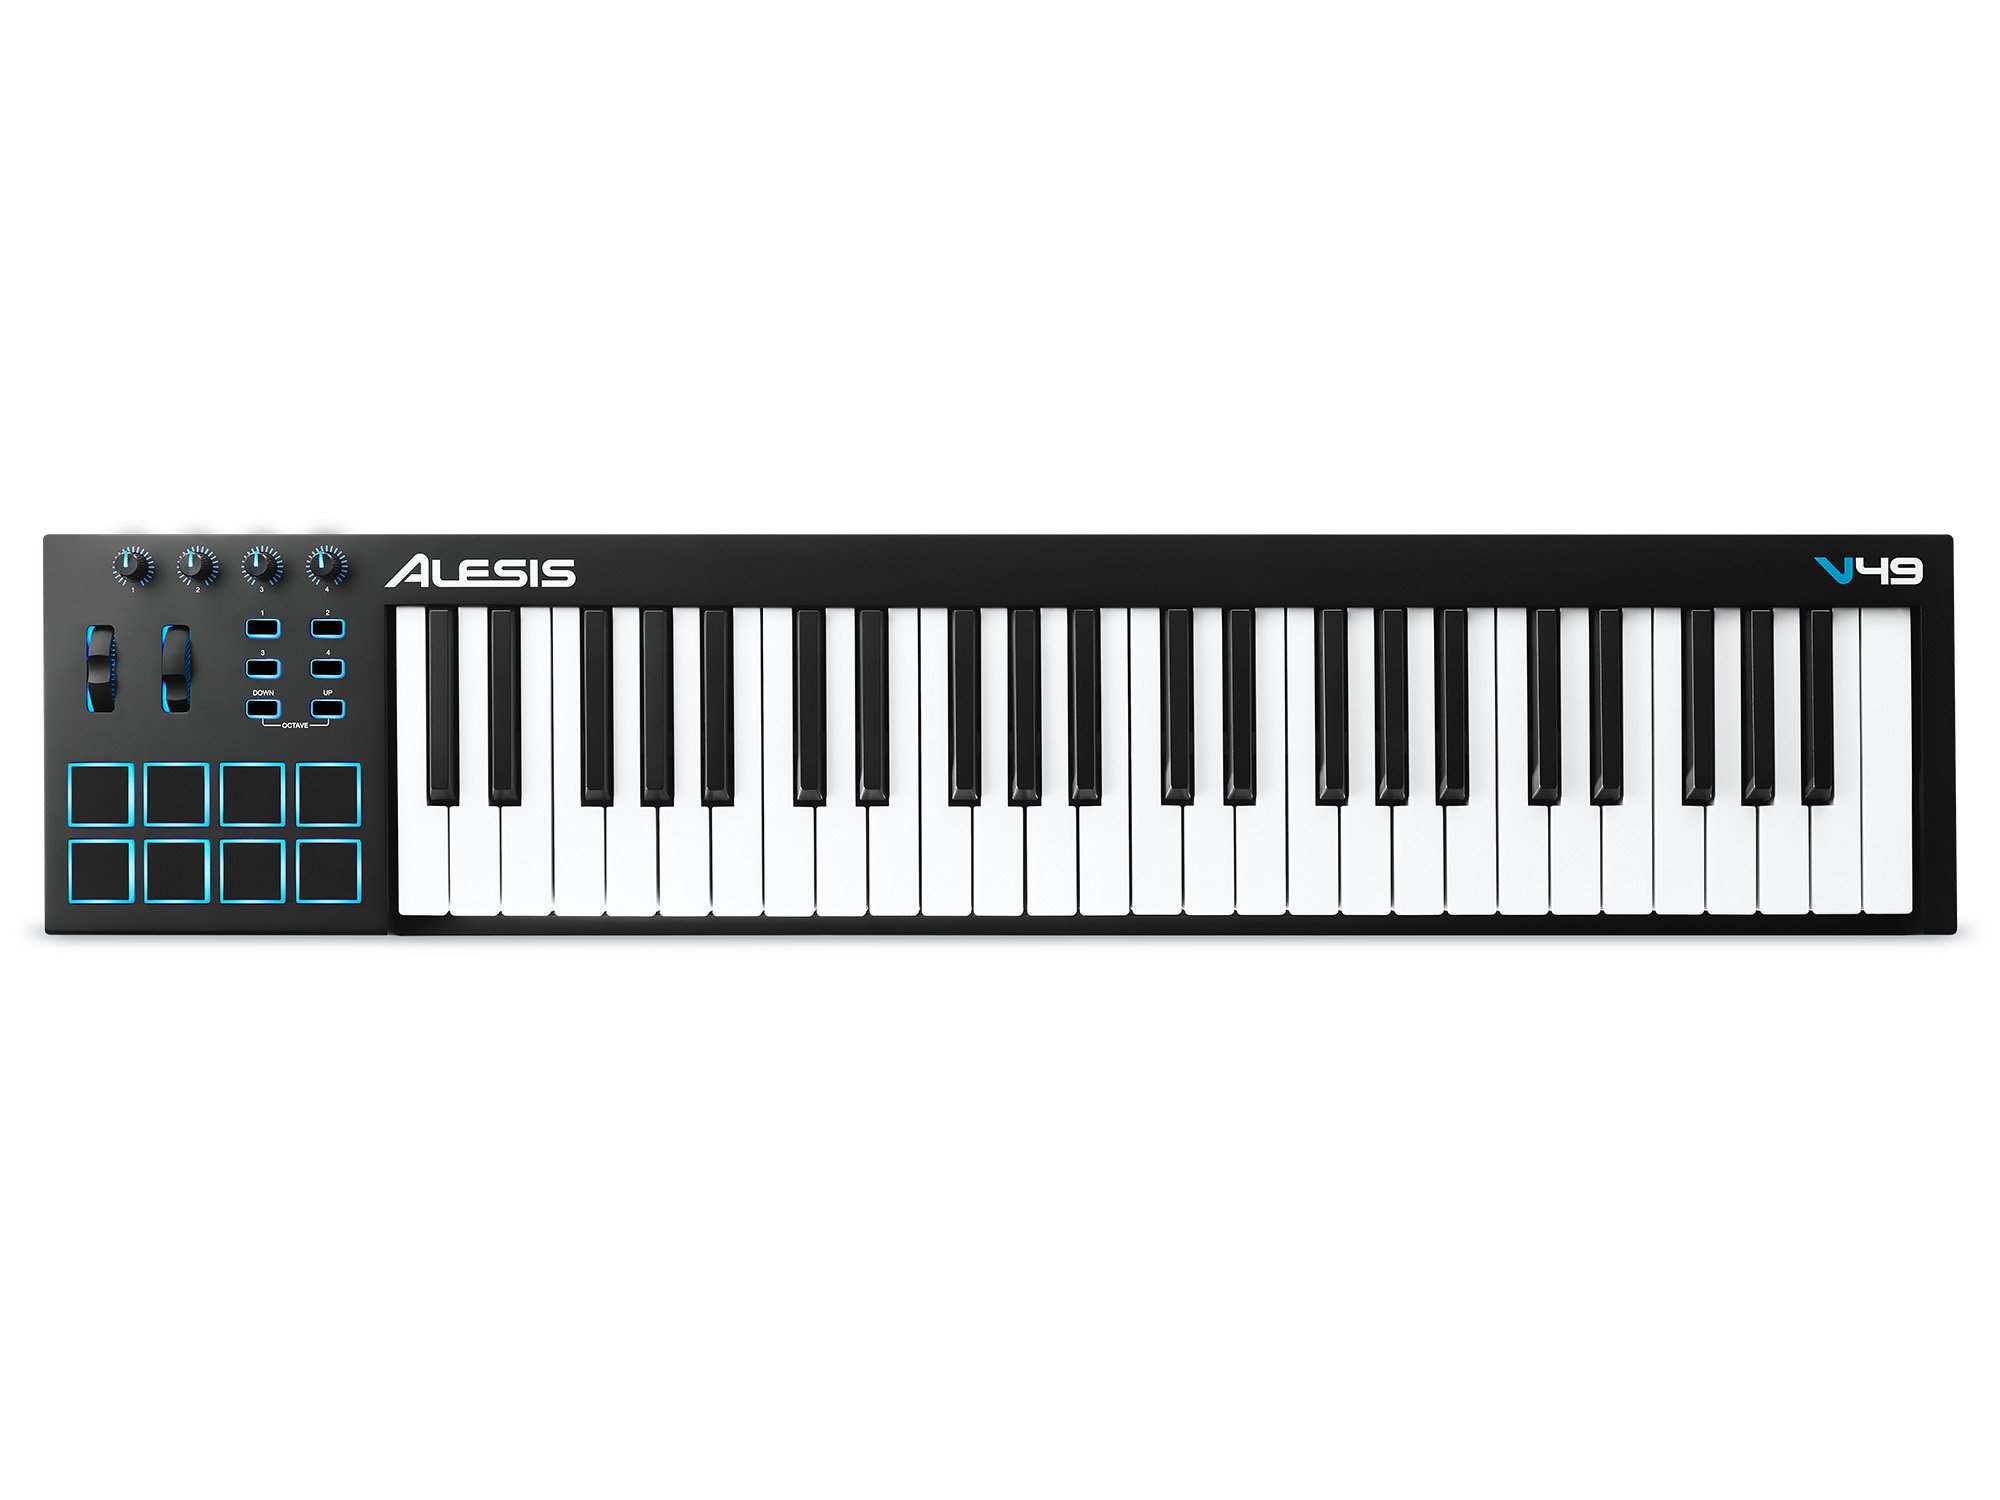 Alesis V49 | 49-Key USB MIDI Keyboard & Drum Pad Controller (8 Pads / 4 Knobs / 4 Buttons)